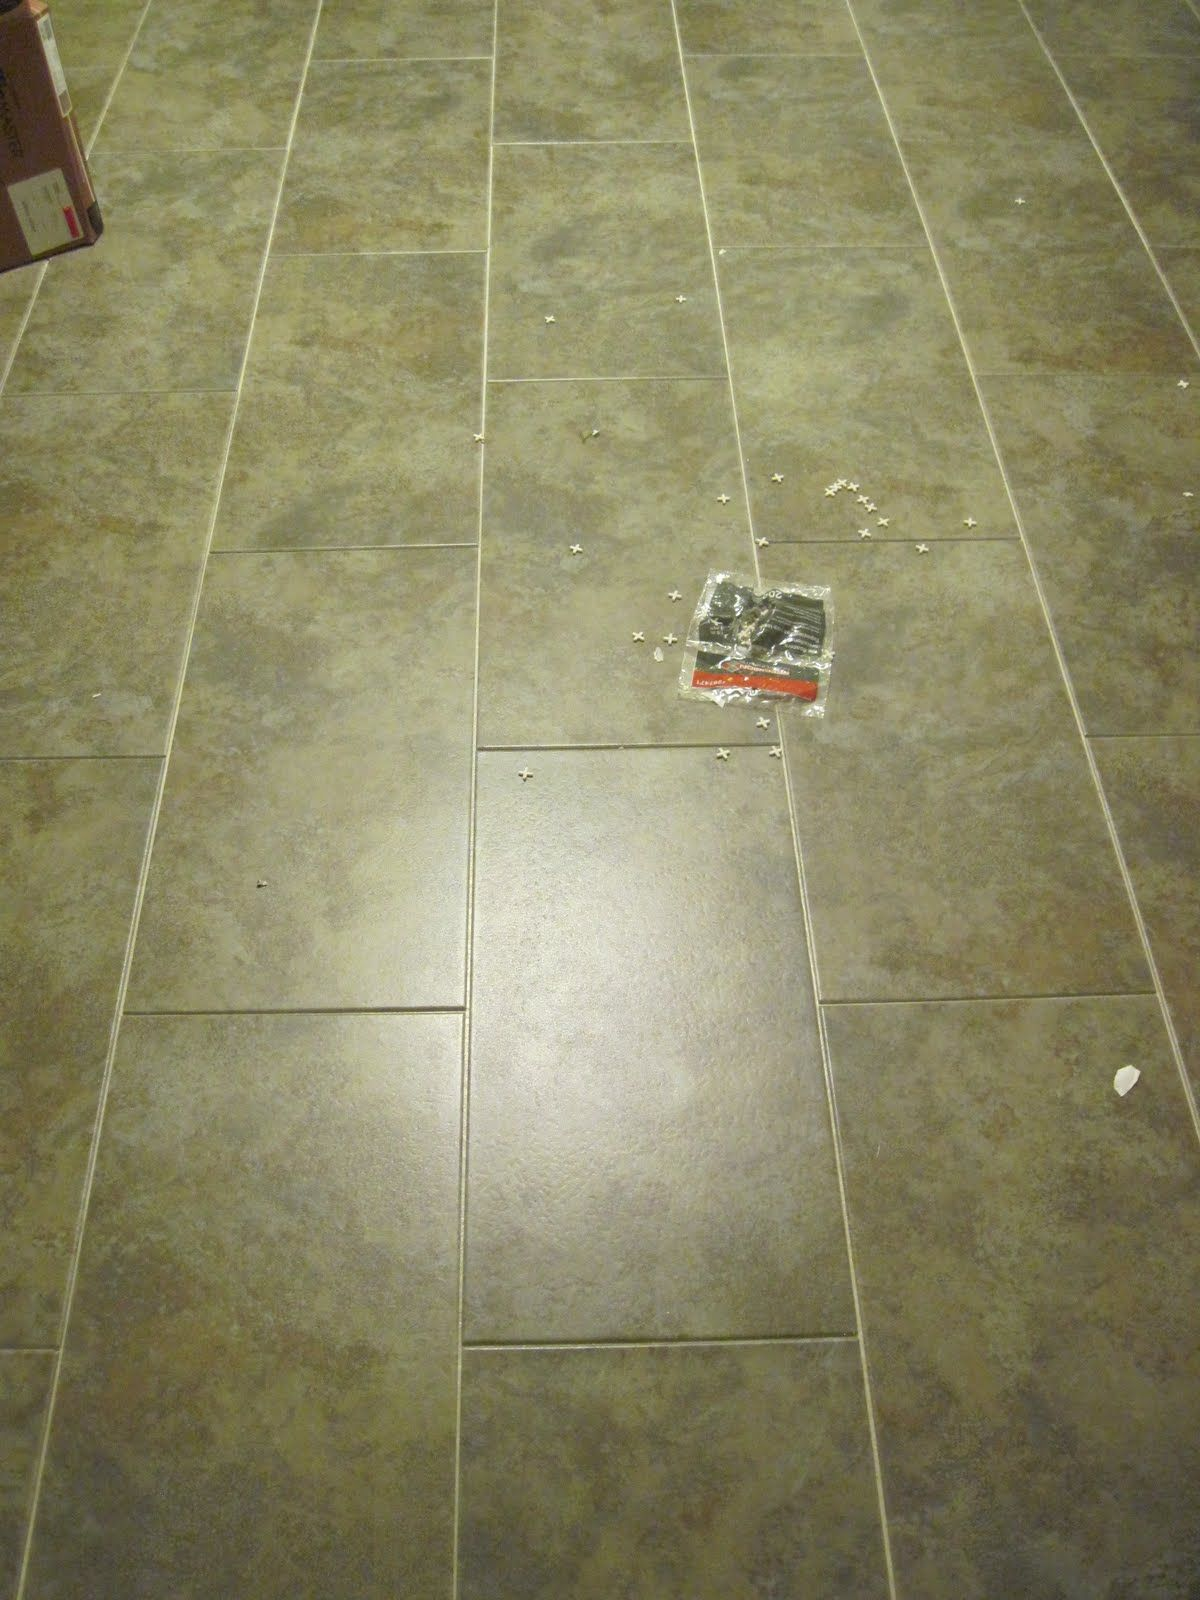 Kitchen Floor Groutable Vinyl Tile Groutable Vinyl Tile Vinyl Tile Kitchen Flooring